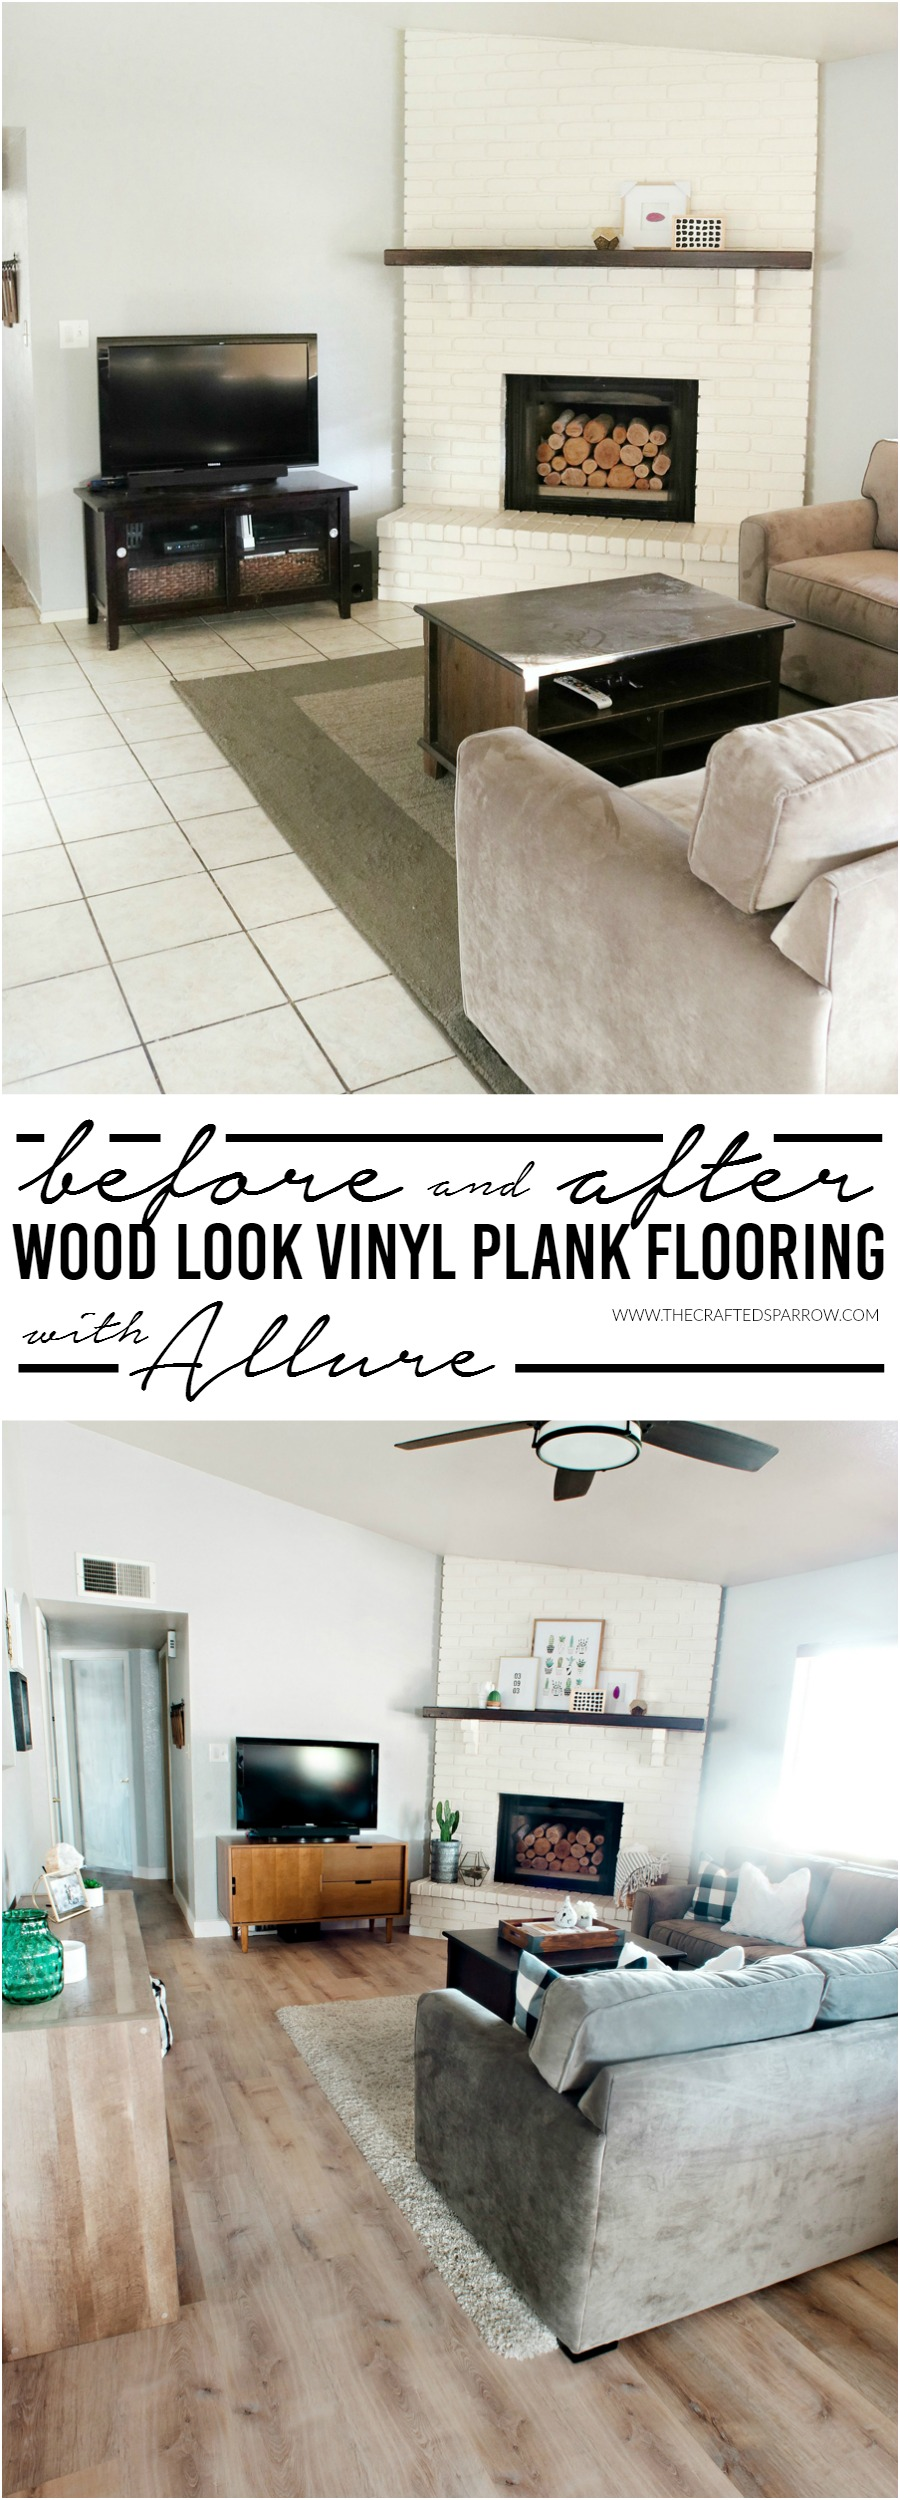 Before & After Allure Flooring